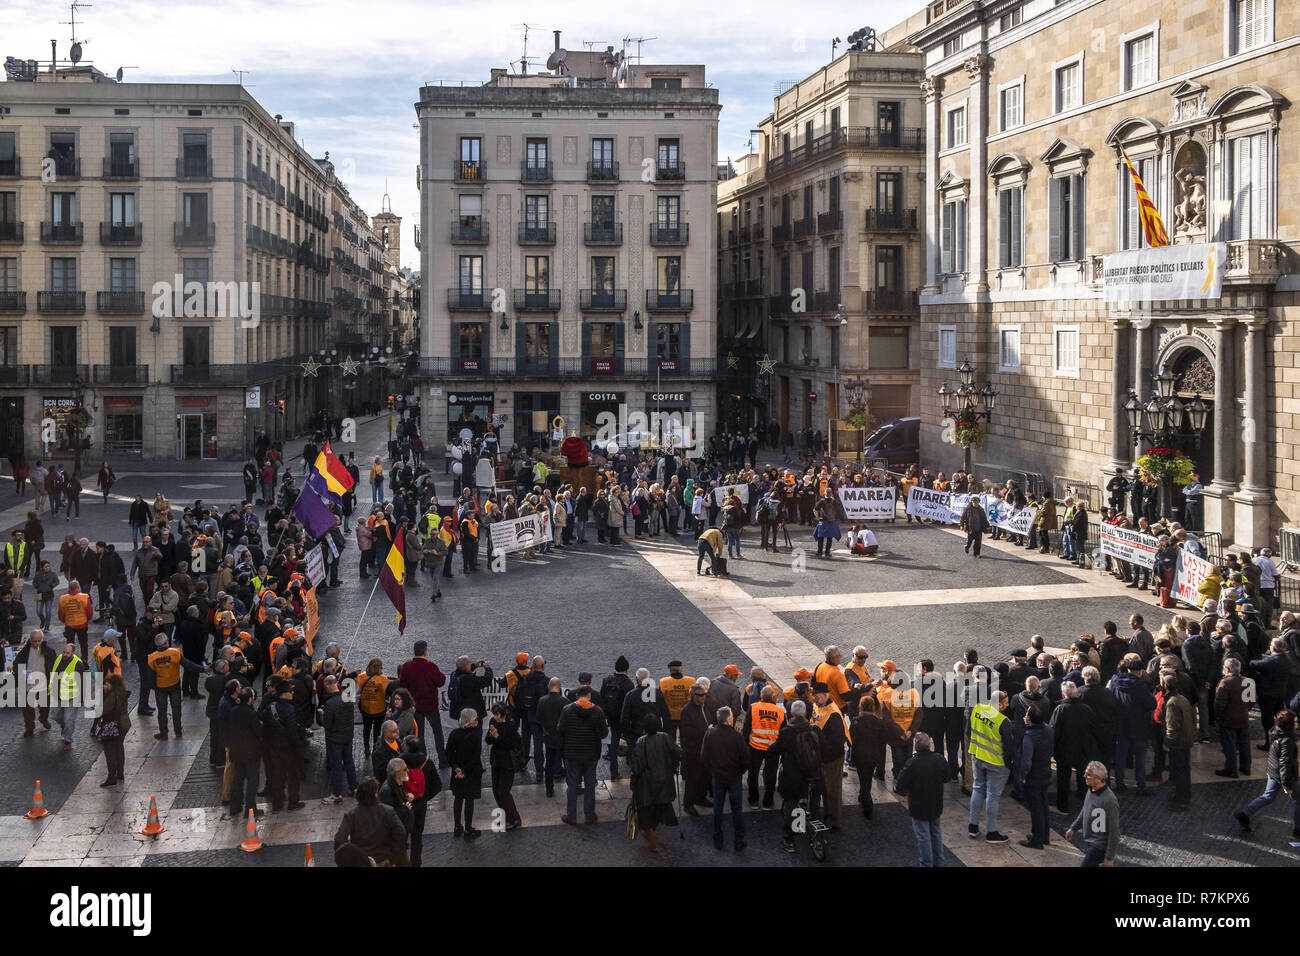 Barcelona, Catalonia, Spain. 10th December, 2018. Protesters against the waiting lists of public health are seen gathered at Plaza Sant Jaume during the protest.Called by Marea Blanca Catalunya within the state fight against the waiting lists and the commercialization of health, the protesters have toured the center of Barcelona to finish in front of the Generalitat of Catalonia. Credit: Paco Freire/SOPA Images/ZUMA Wire/Alamy Live News - Stock Image